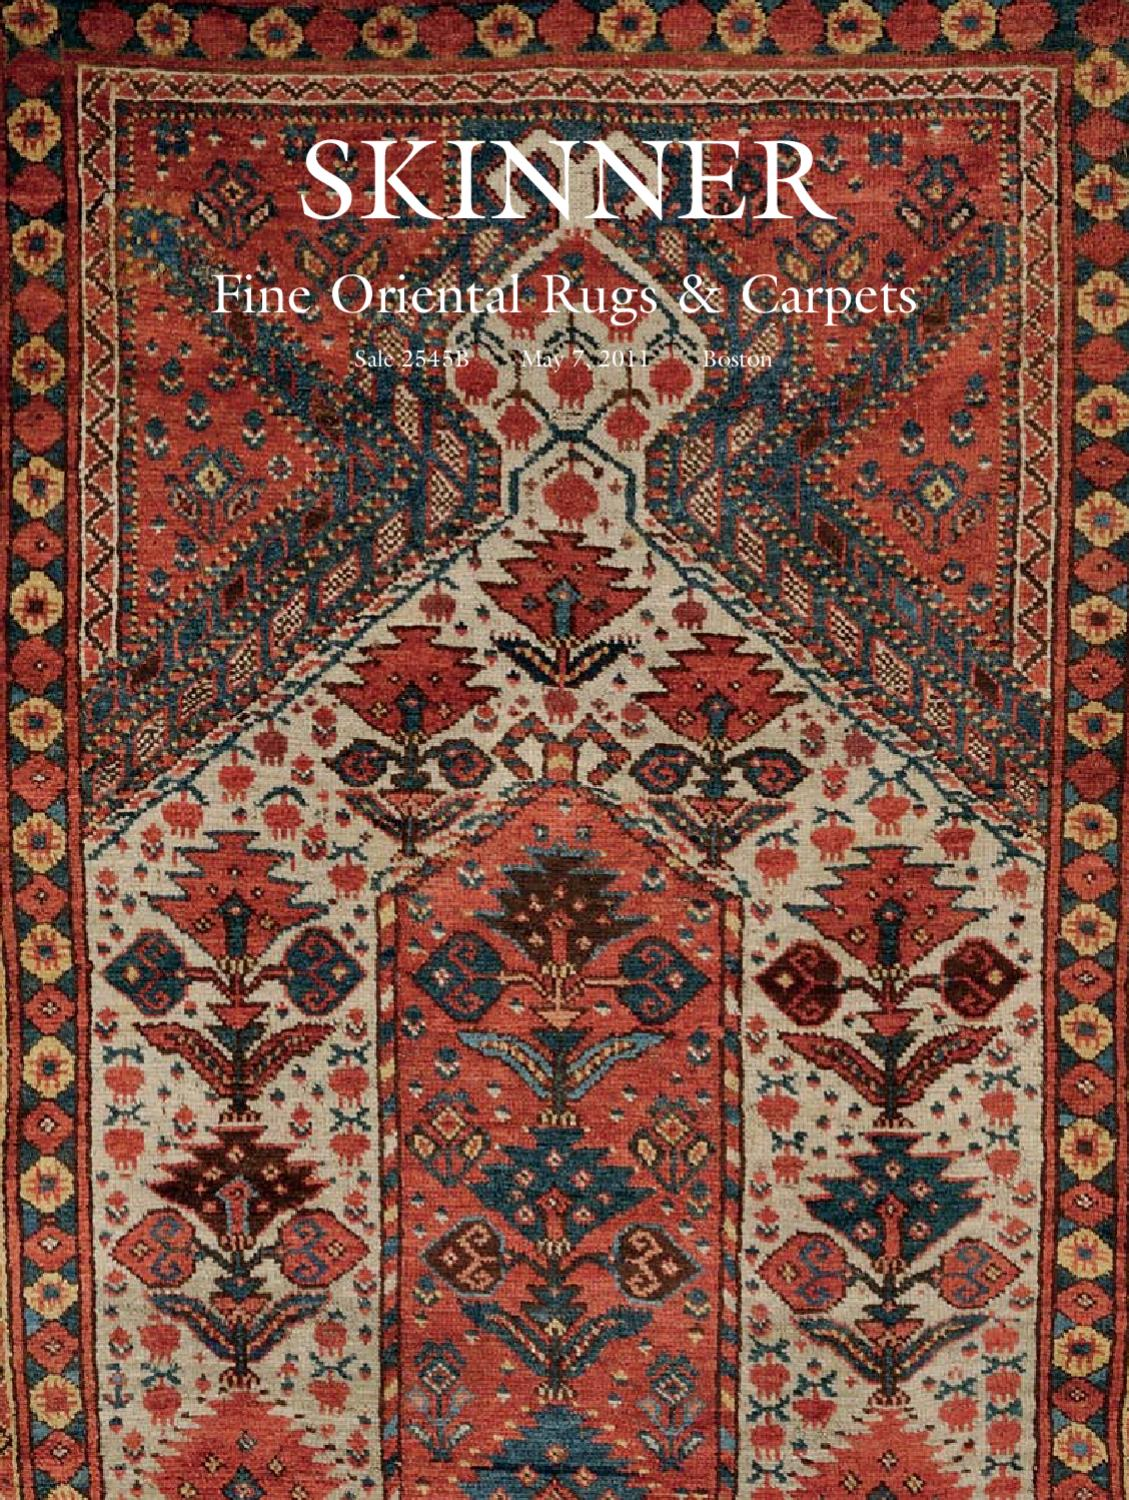 Oriental Rugs Carpets Skinner Auction 2545b By Skinner Inc Issuu